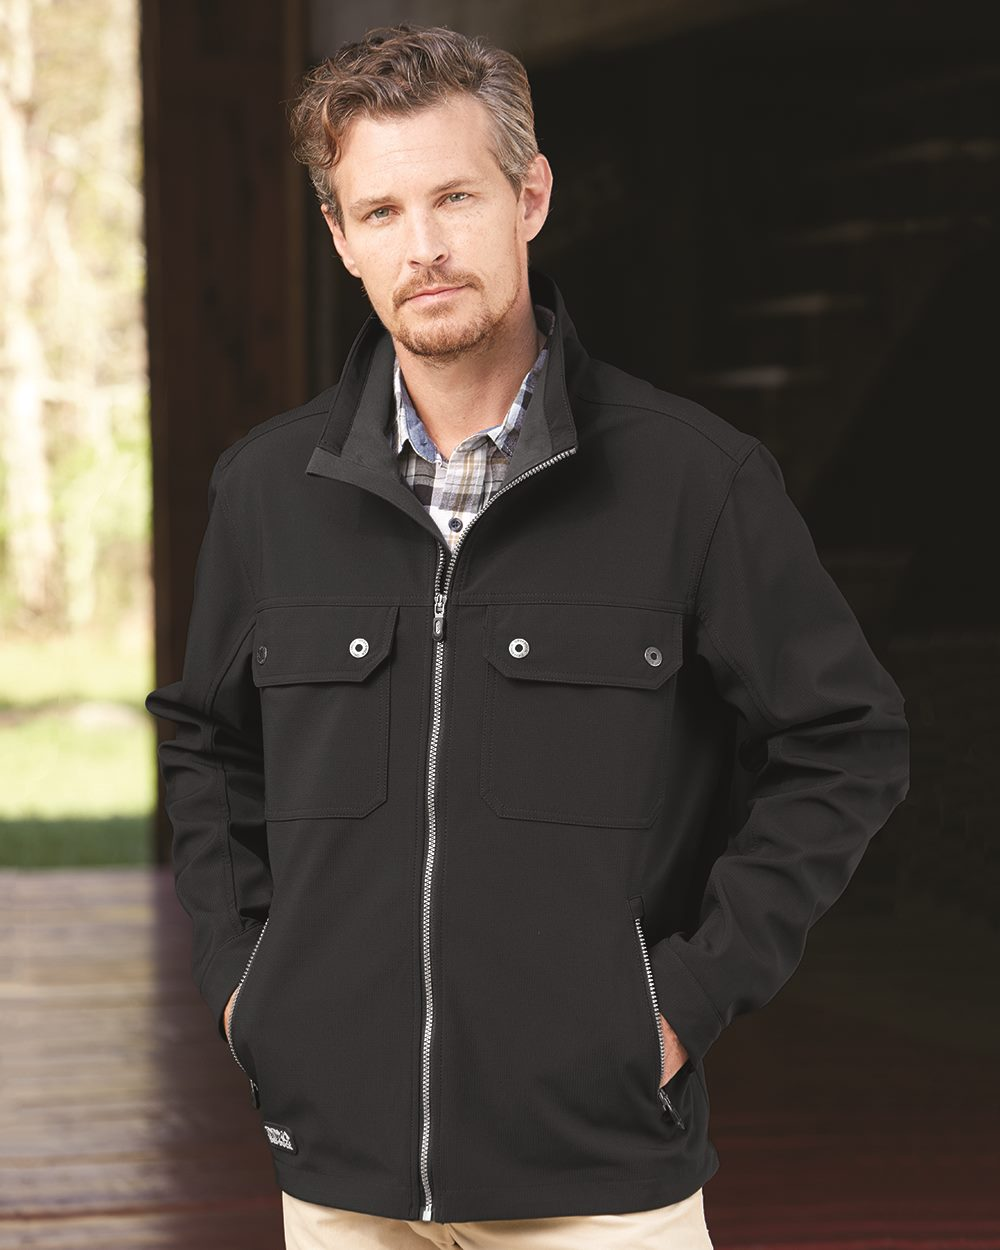 DRI DUCK 5360 - Elevation Soft Shell Jacket